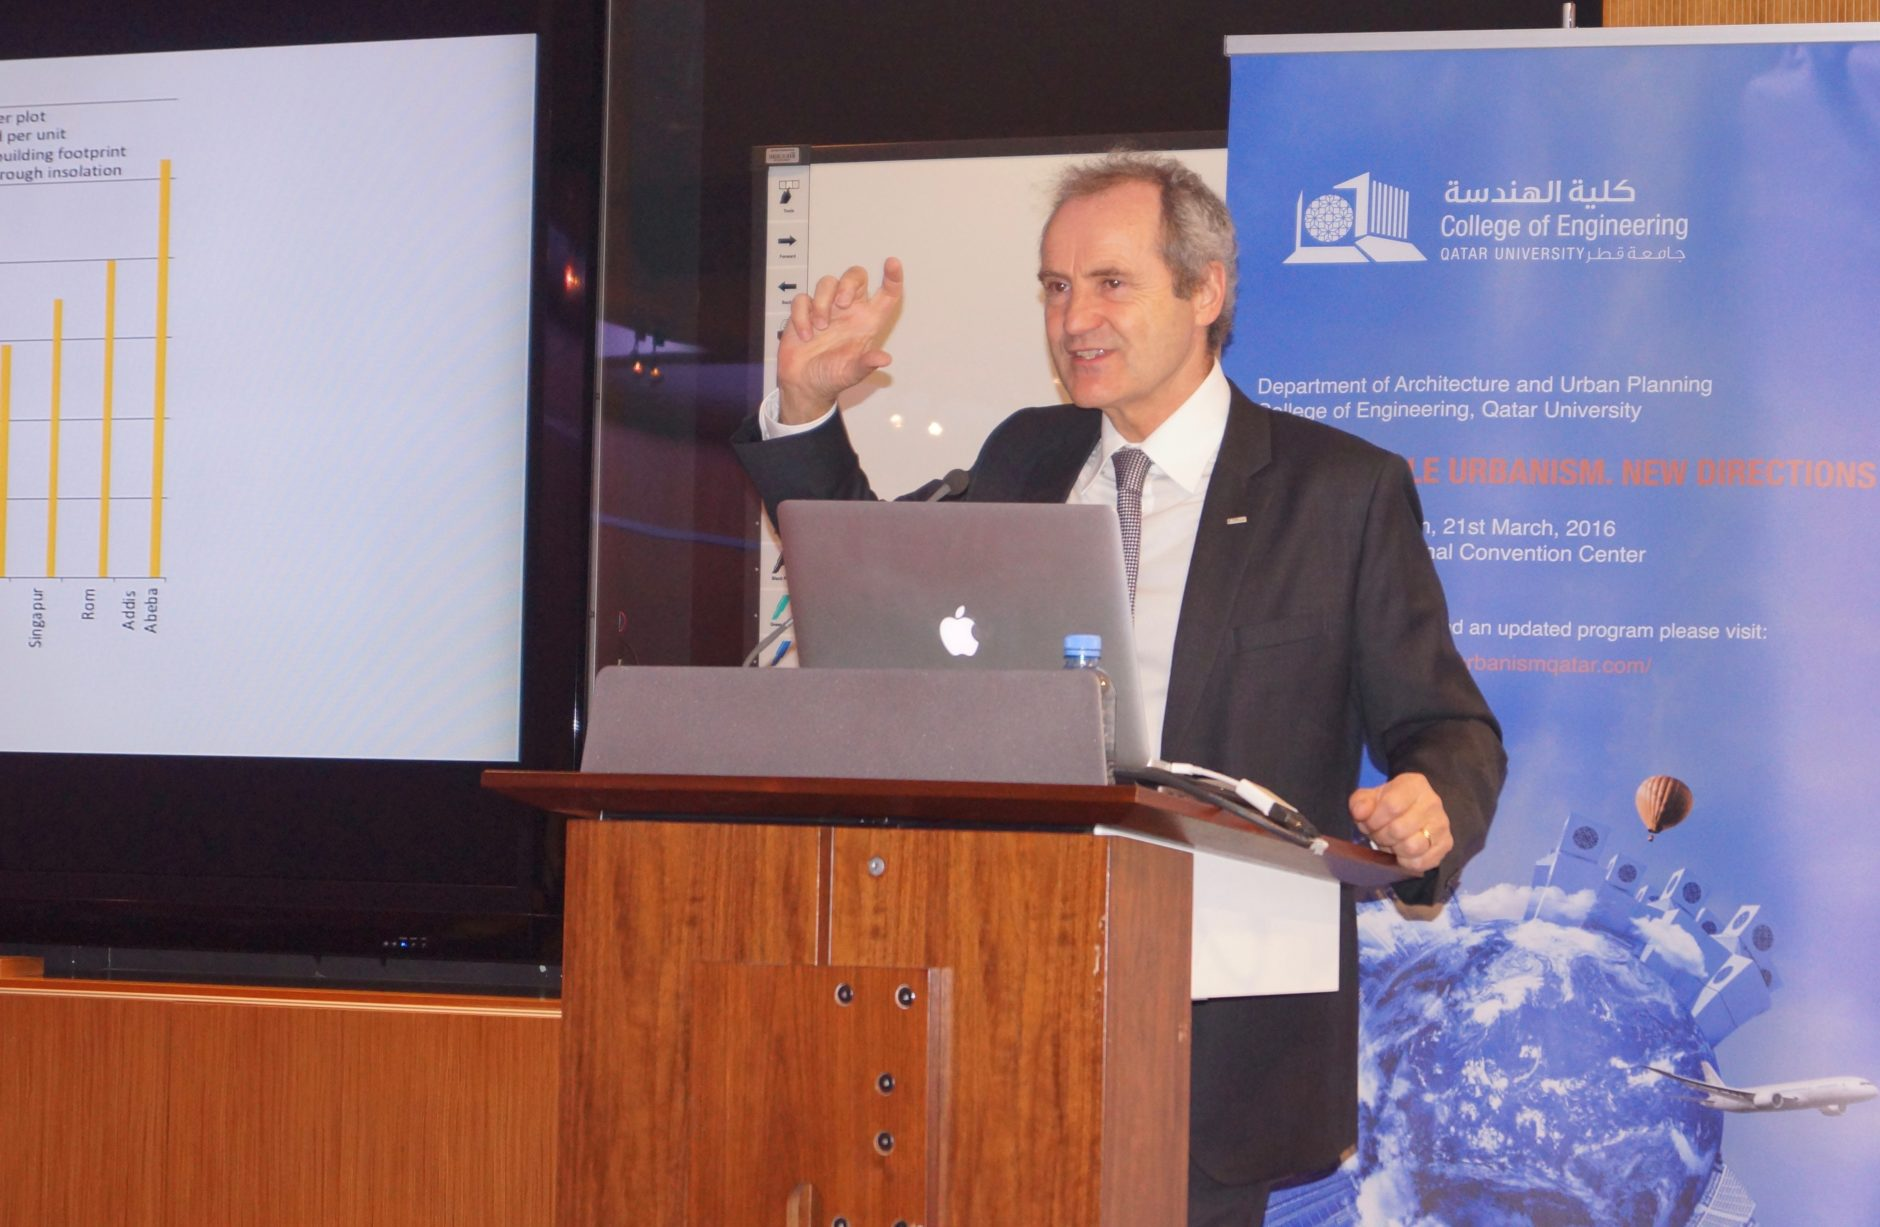 Professor Dr. Gerhard Schmitt, Sustainable Urbanism New Directions Workshop, University of Qatar, 21 March 2016. © University of Qatar.